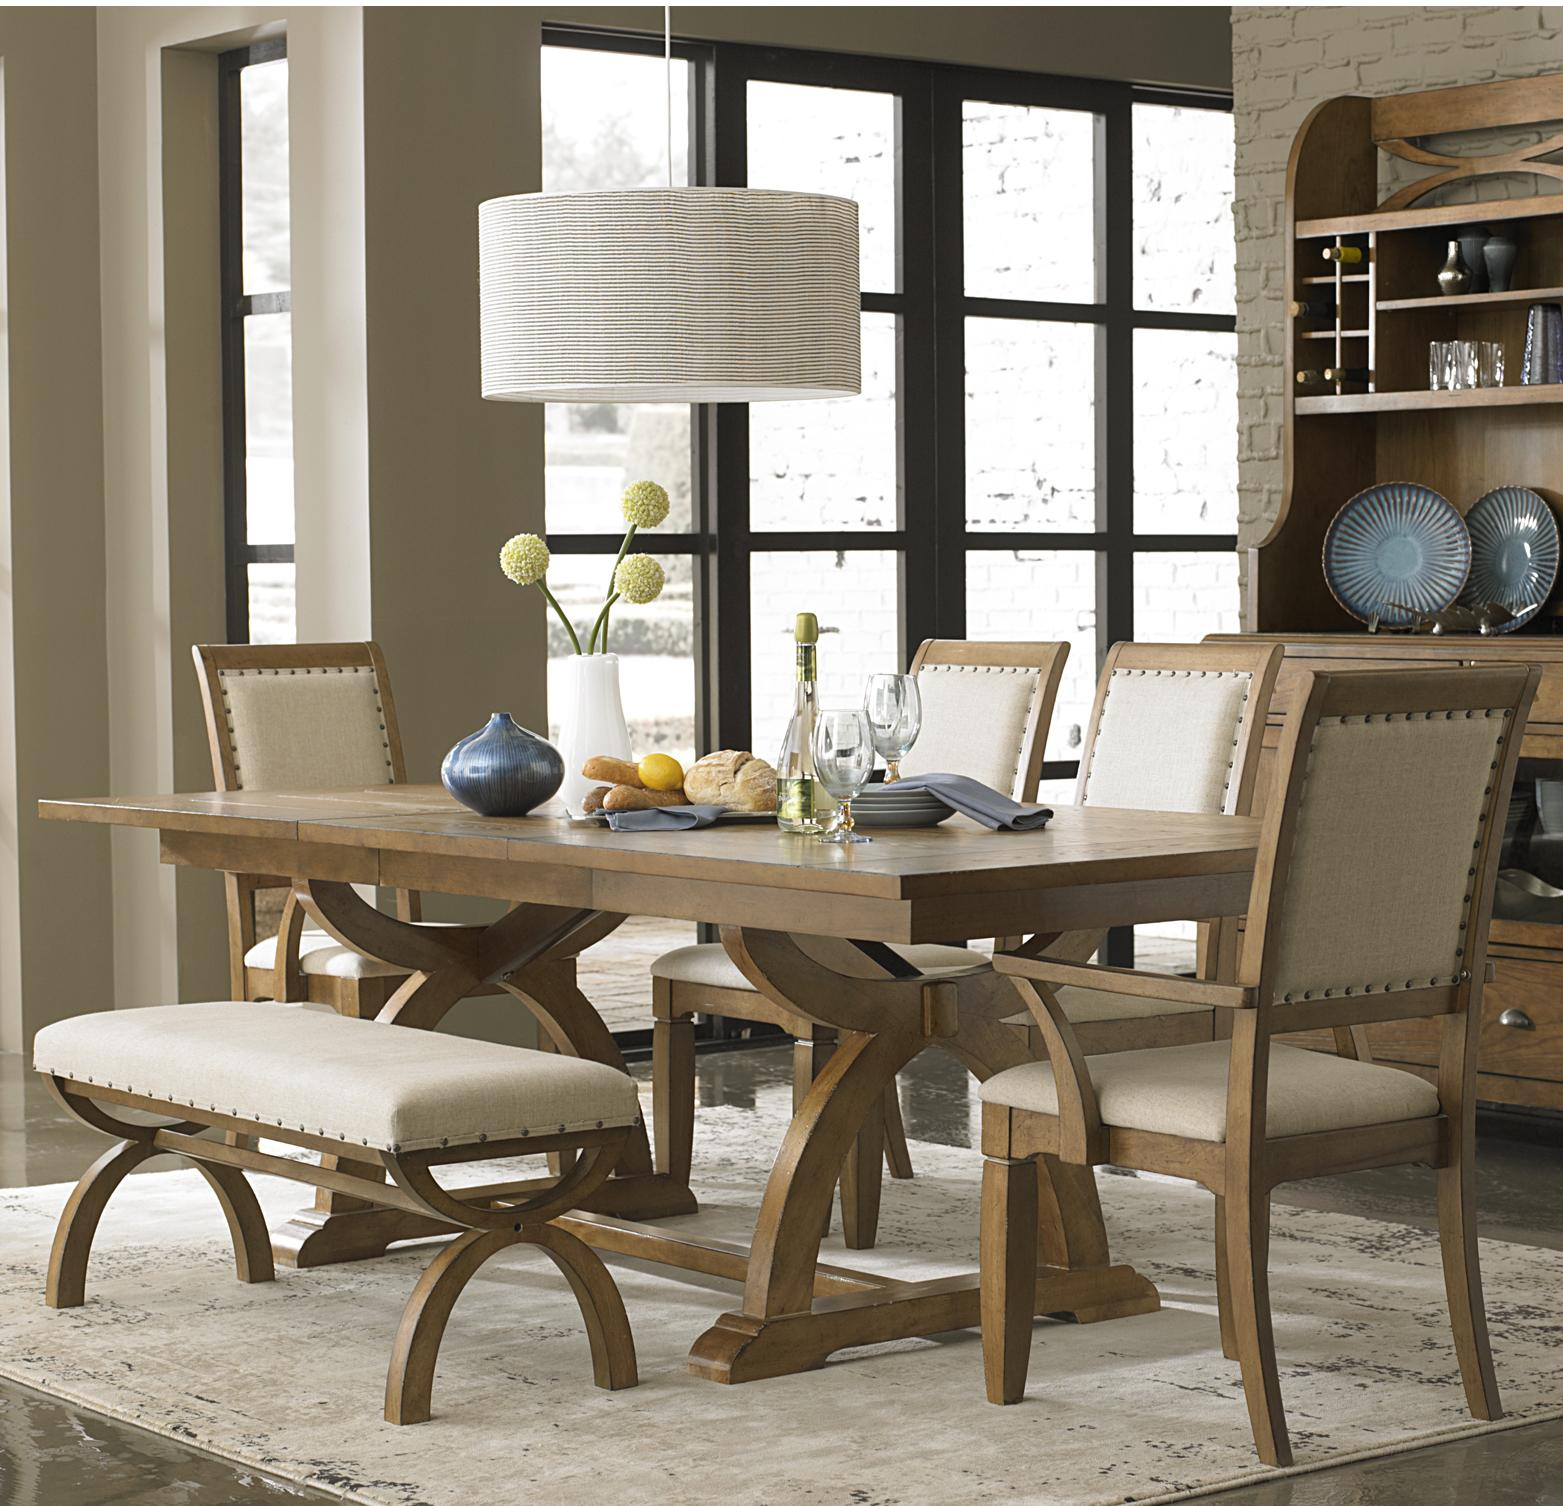 Delightful 6 Piece Trestle Table Set With 4 Upholstered Chairs U0026 Dining Bench